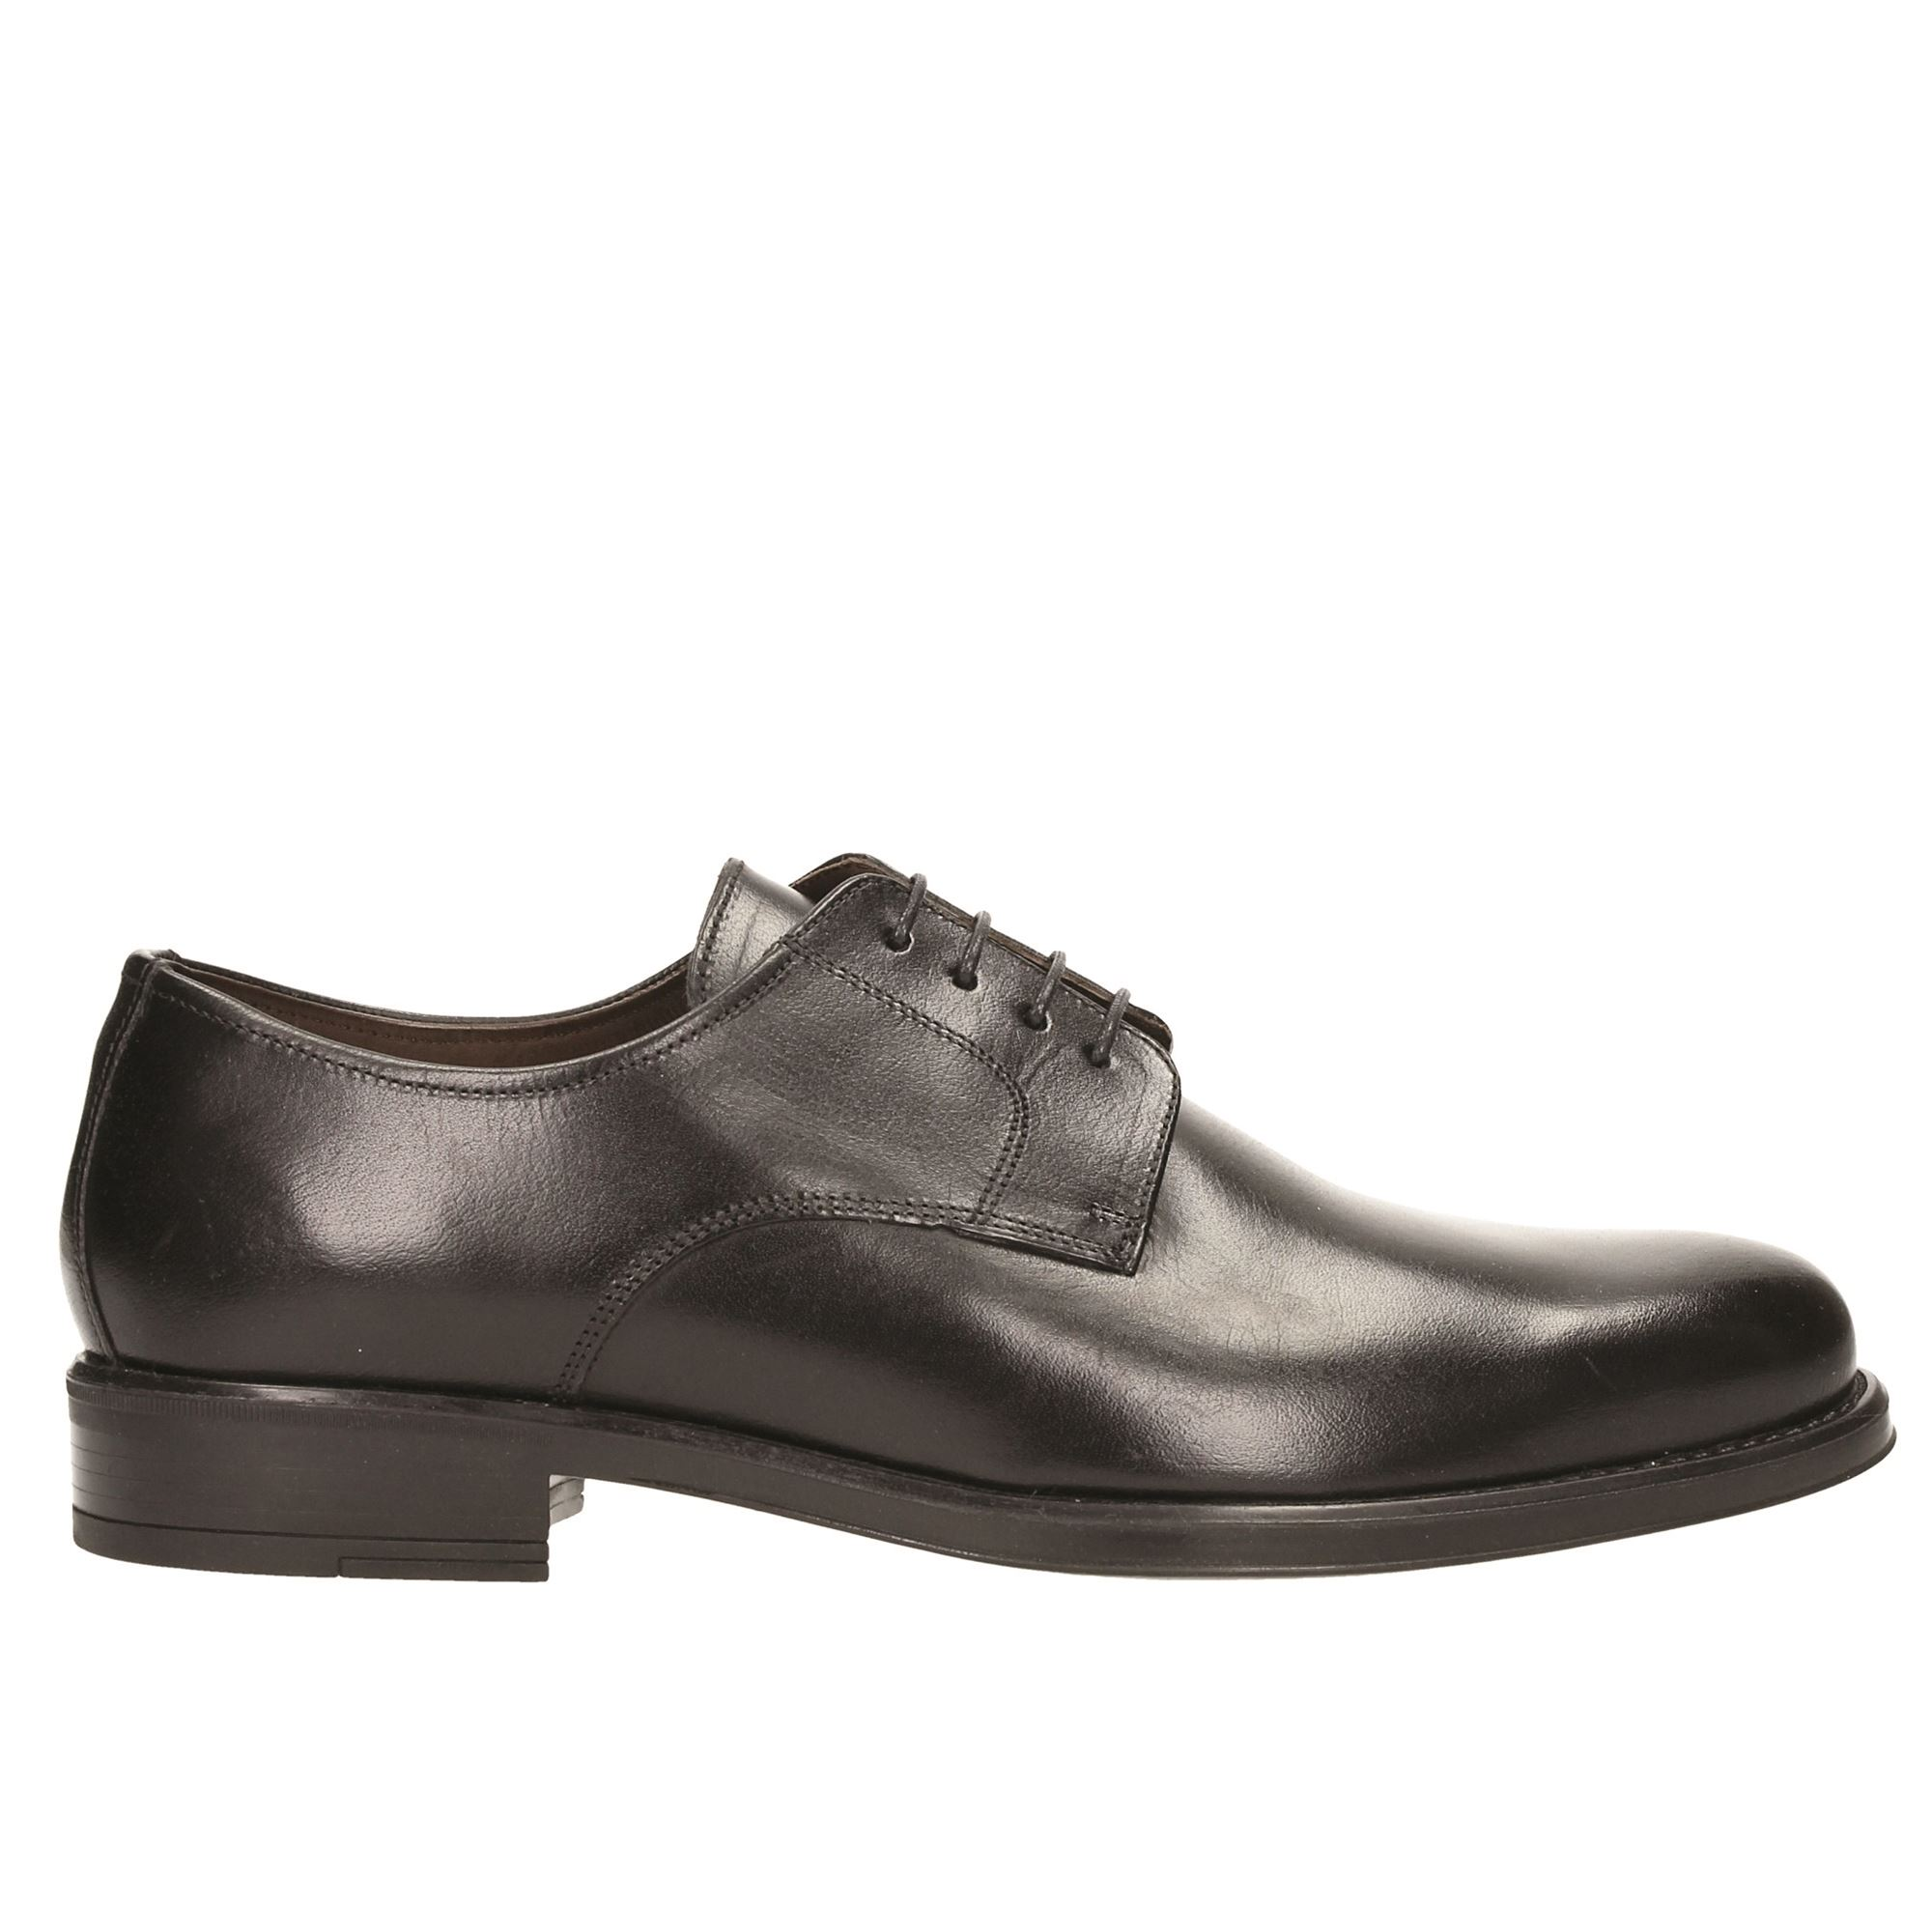 Tata Italia Shoes Man Derby Black 110231